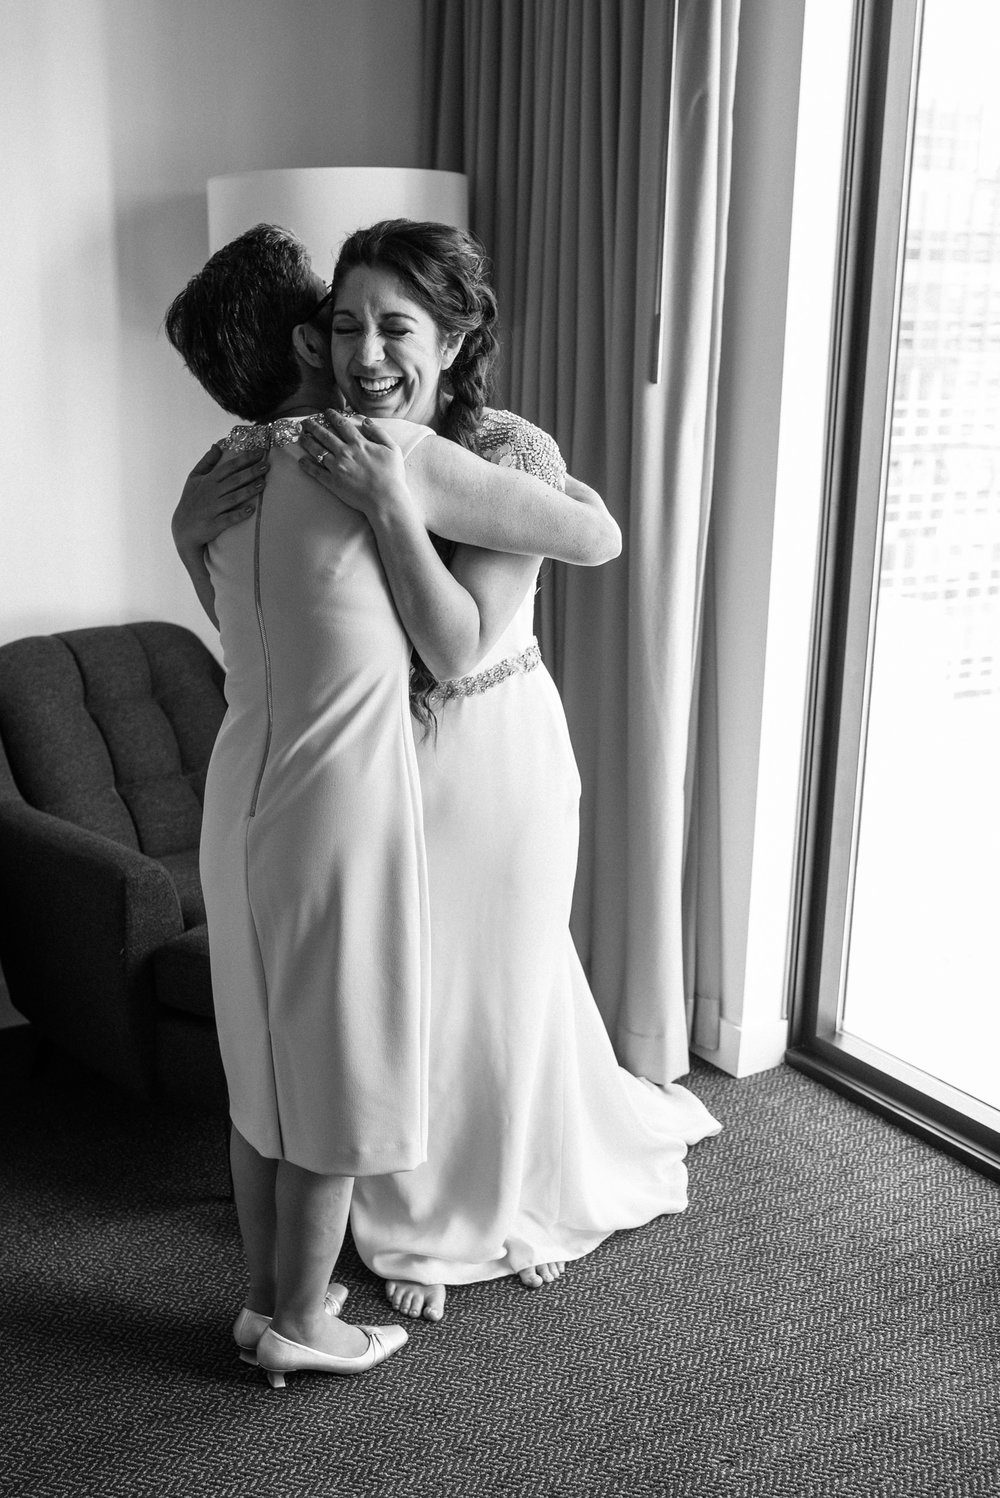 Colorado Denver Downtown Urban Wedding Colorado Wedding Photographer Mom and Bride